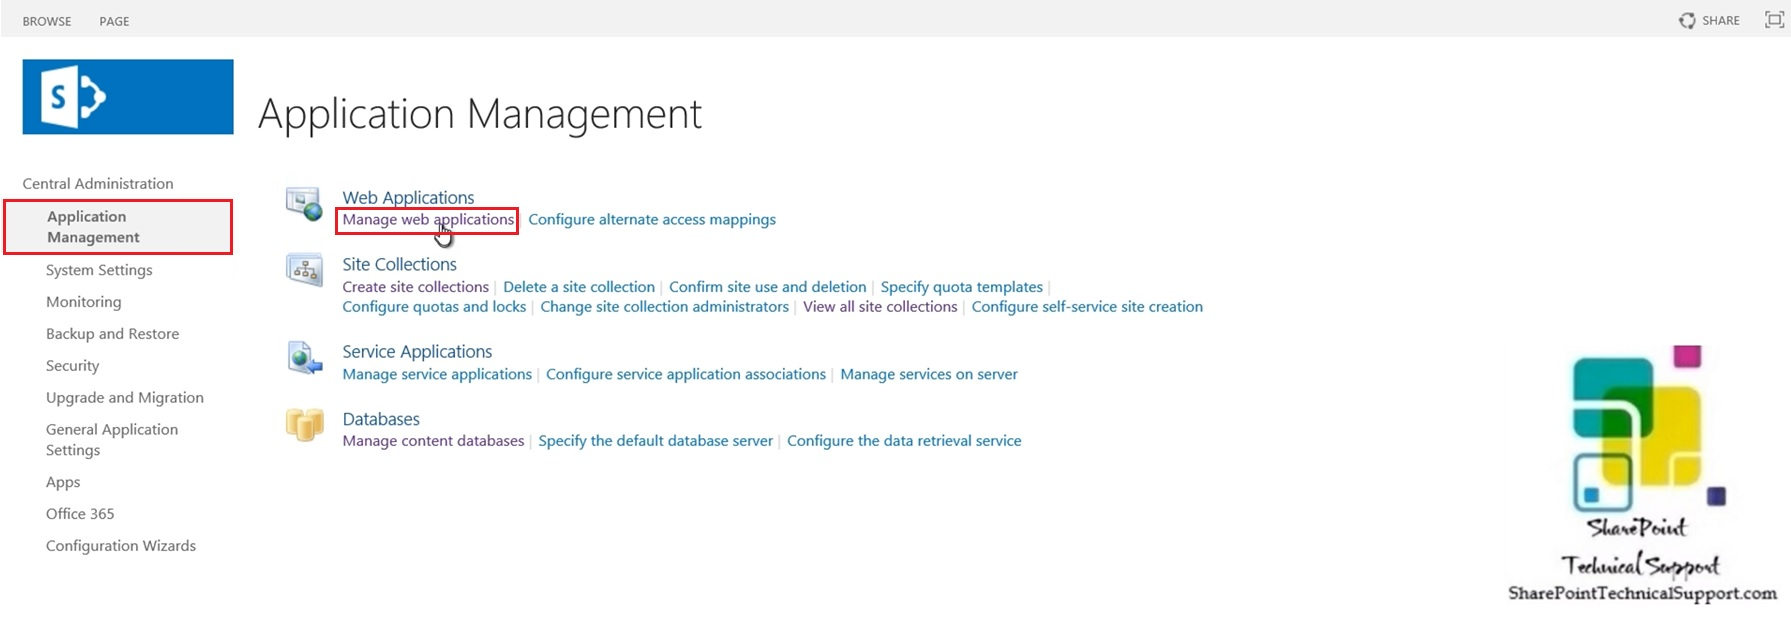 manage web application in sharepoint 2019